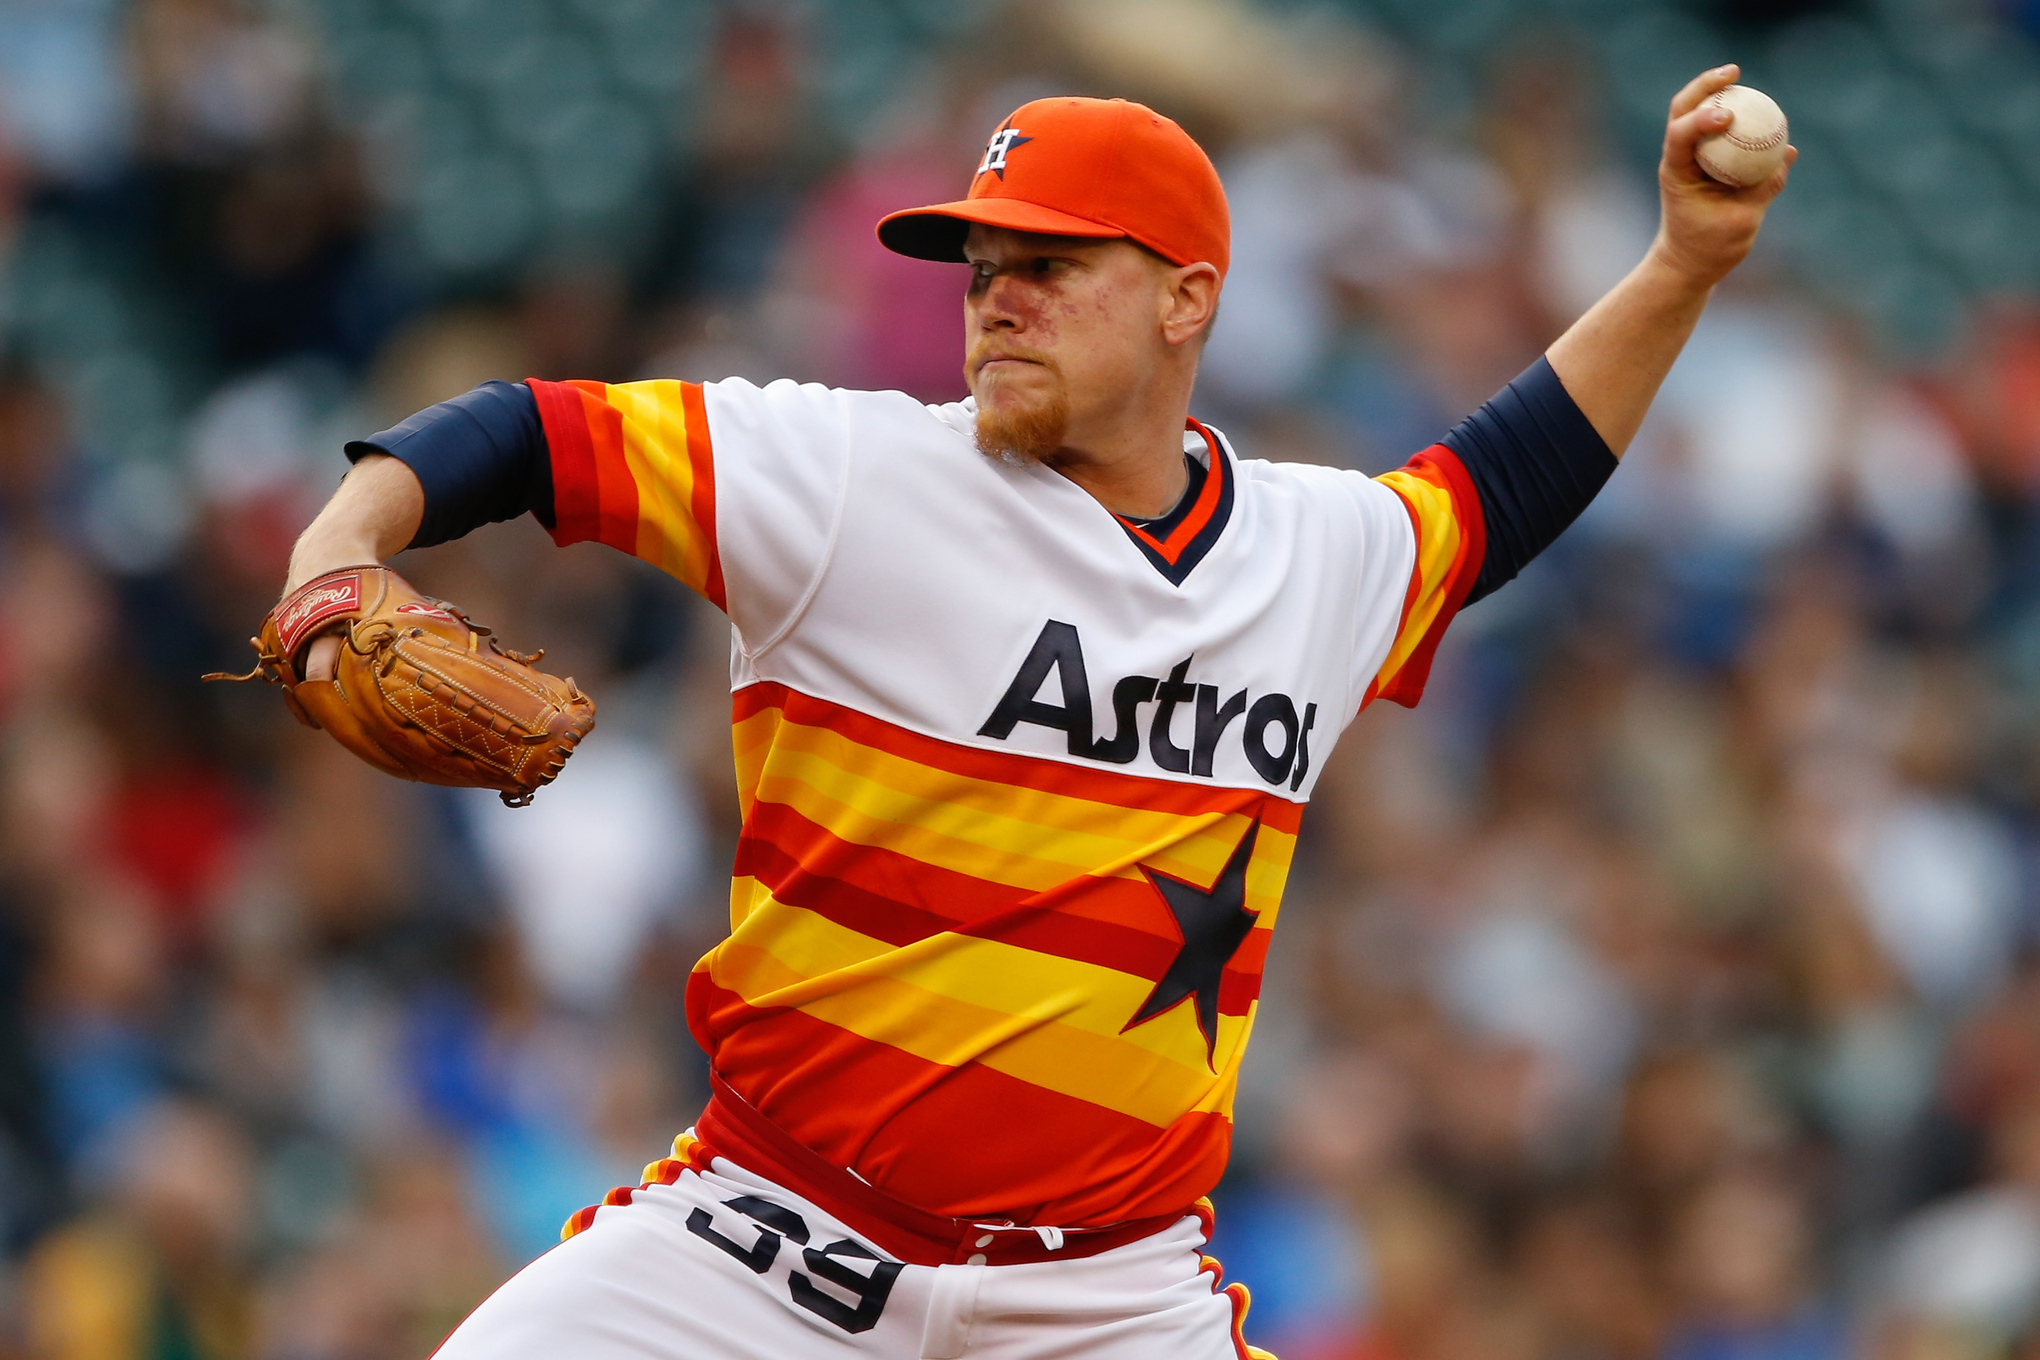 low priced 982c4 cad66 Astros wear throwbacks uniforms in Seattle - The Crawfish Boxes